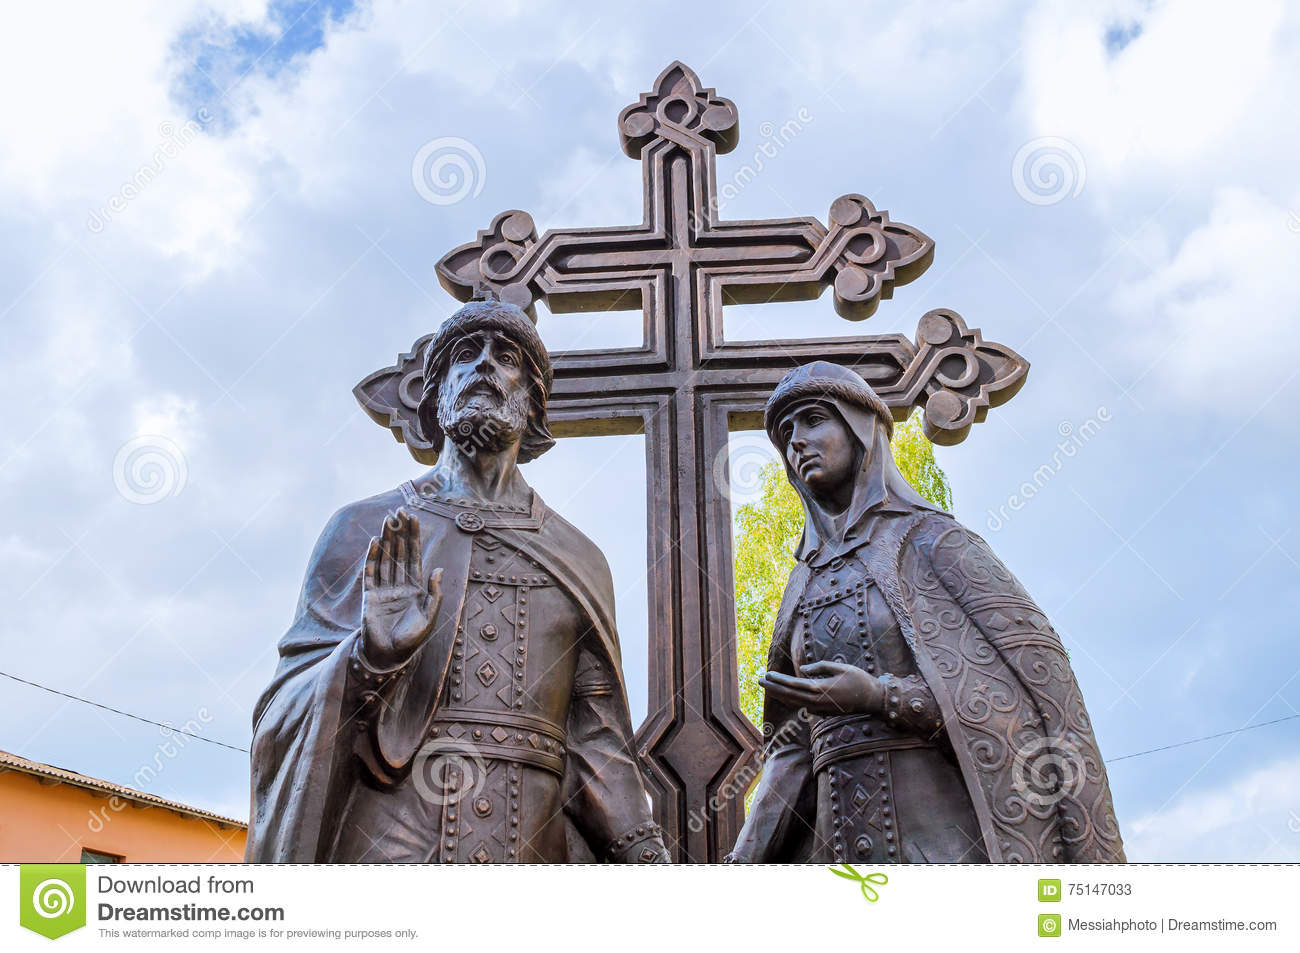 Day of Saints Peter and Fevronia. When they celebrate the Day of Remembrance of Saints Peter and Fevronia of Murom 92